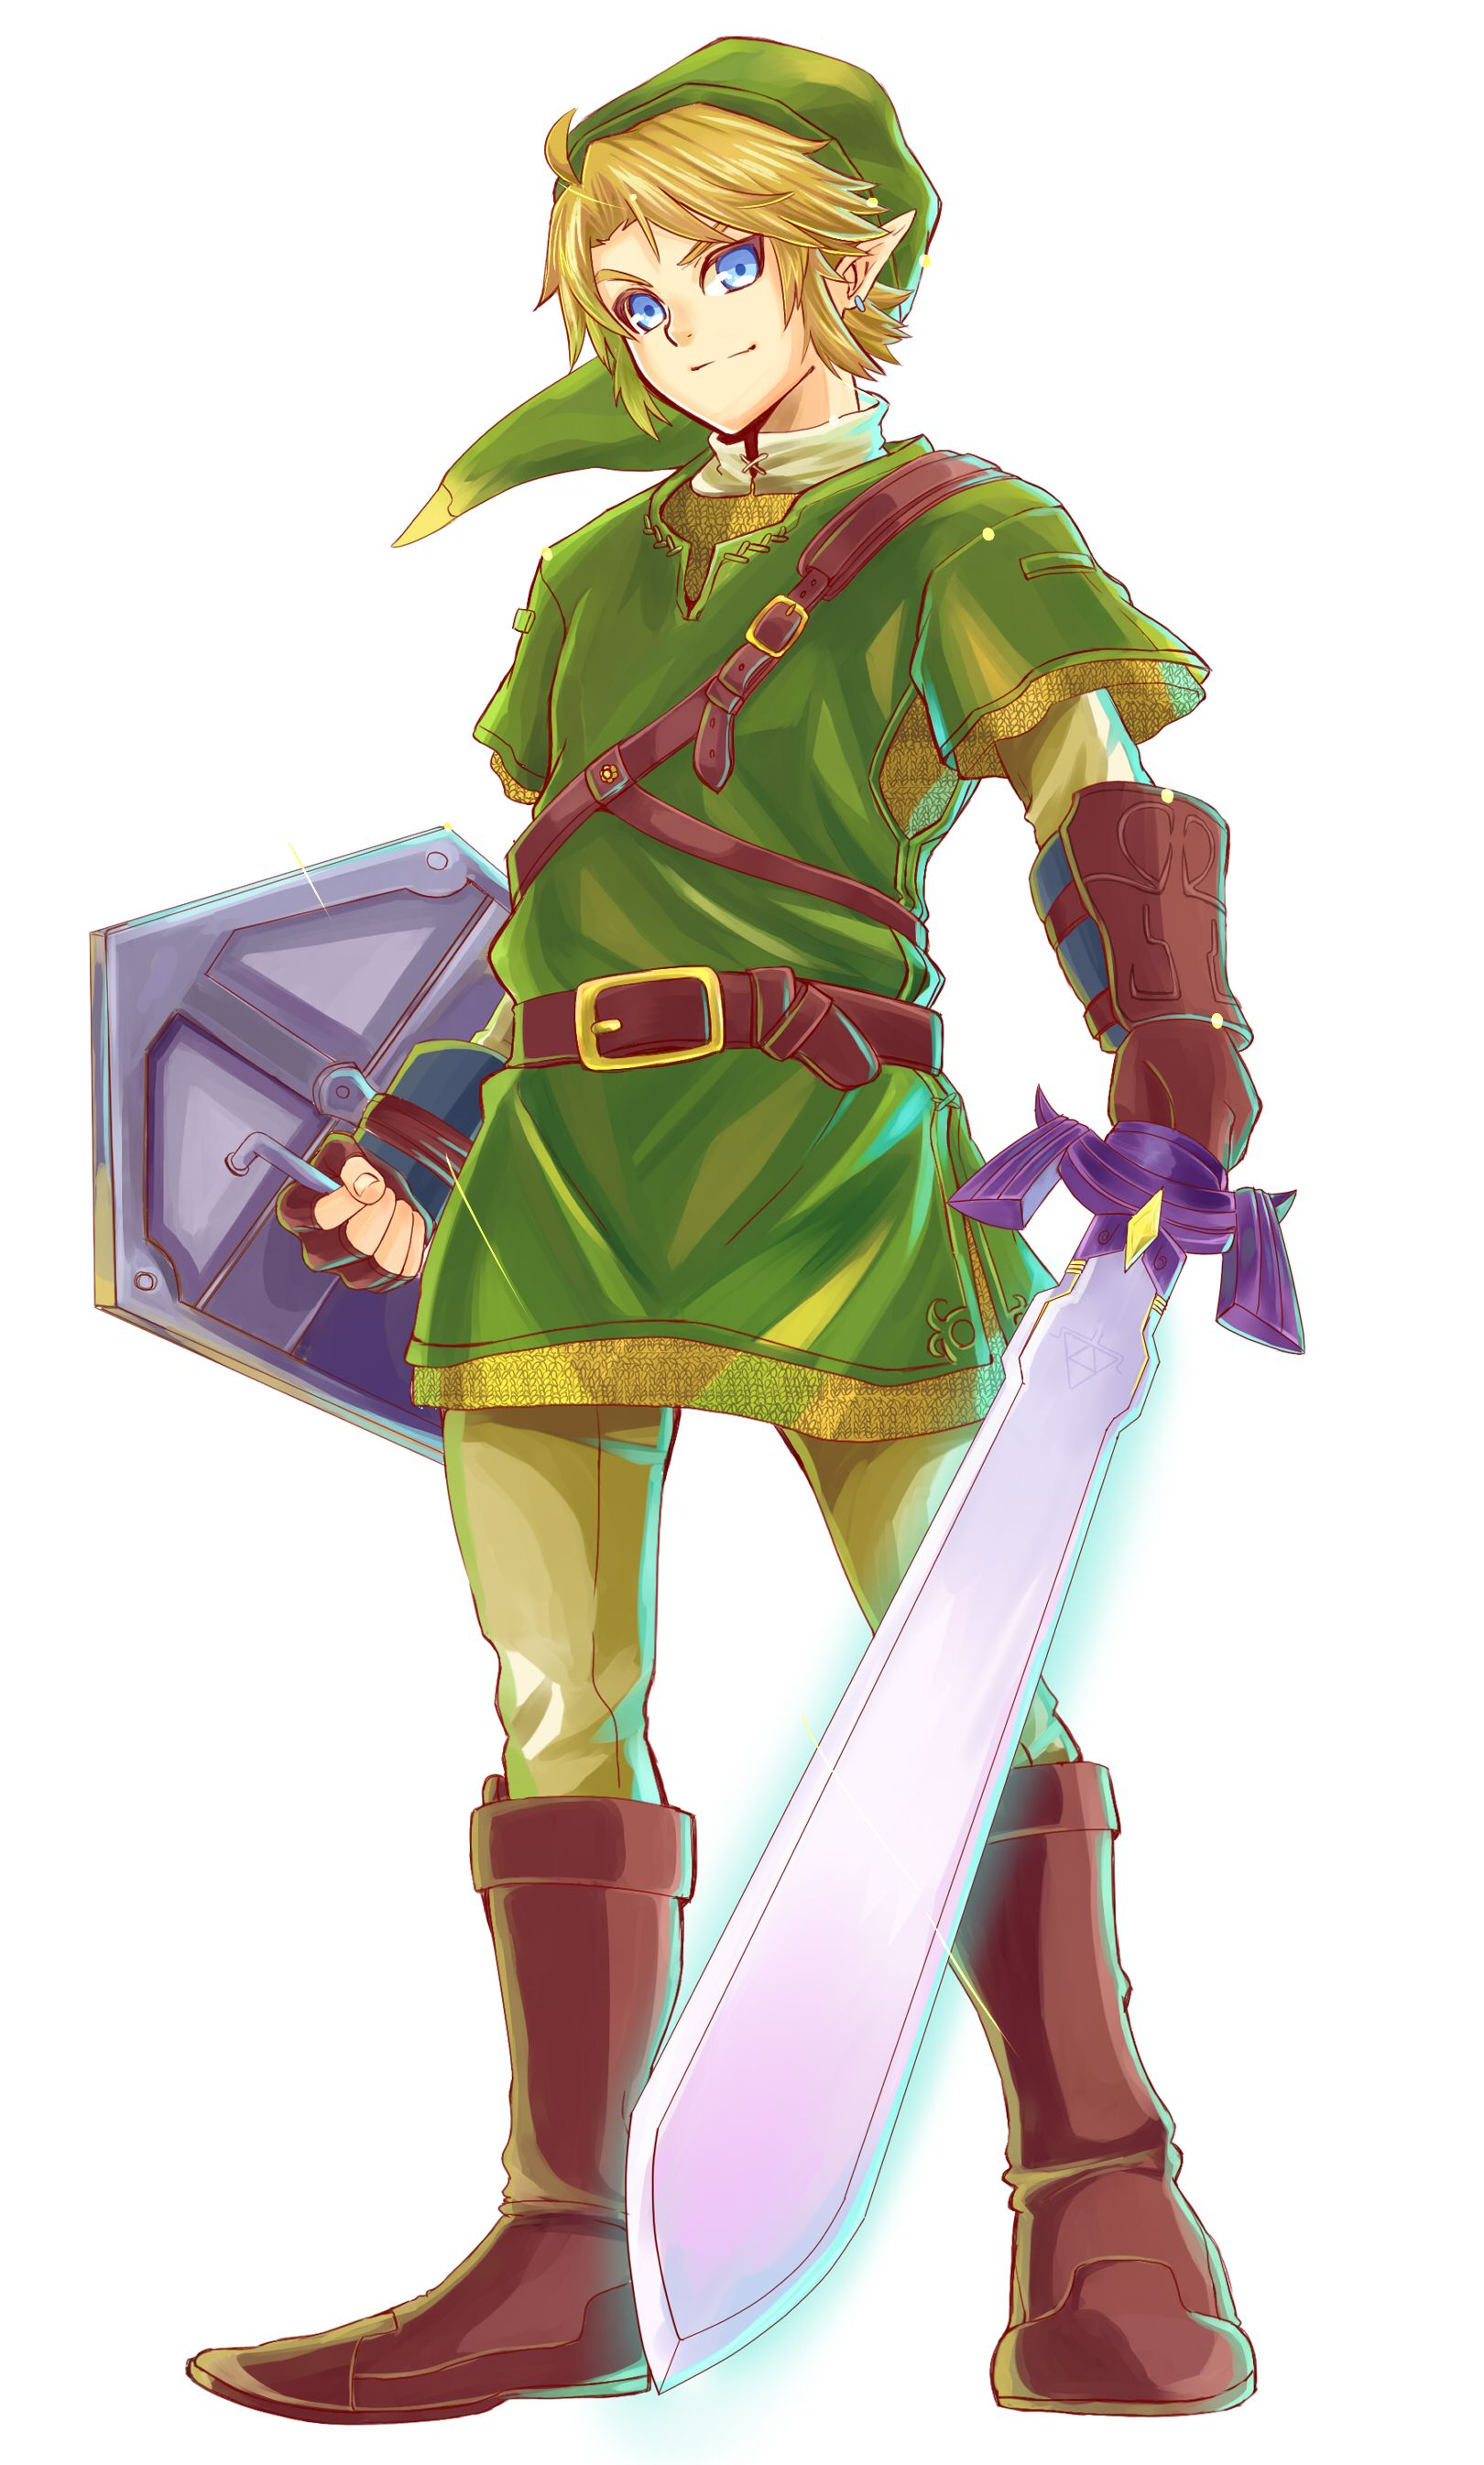 Link Love the sword perspective! Legend of zelda